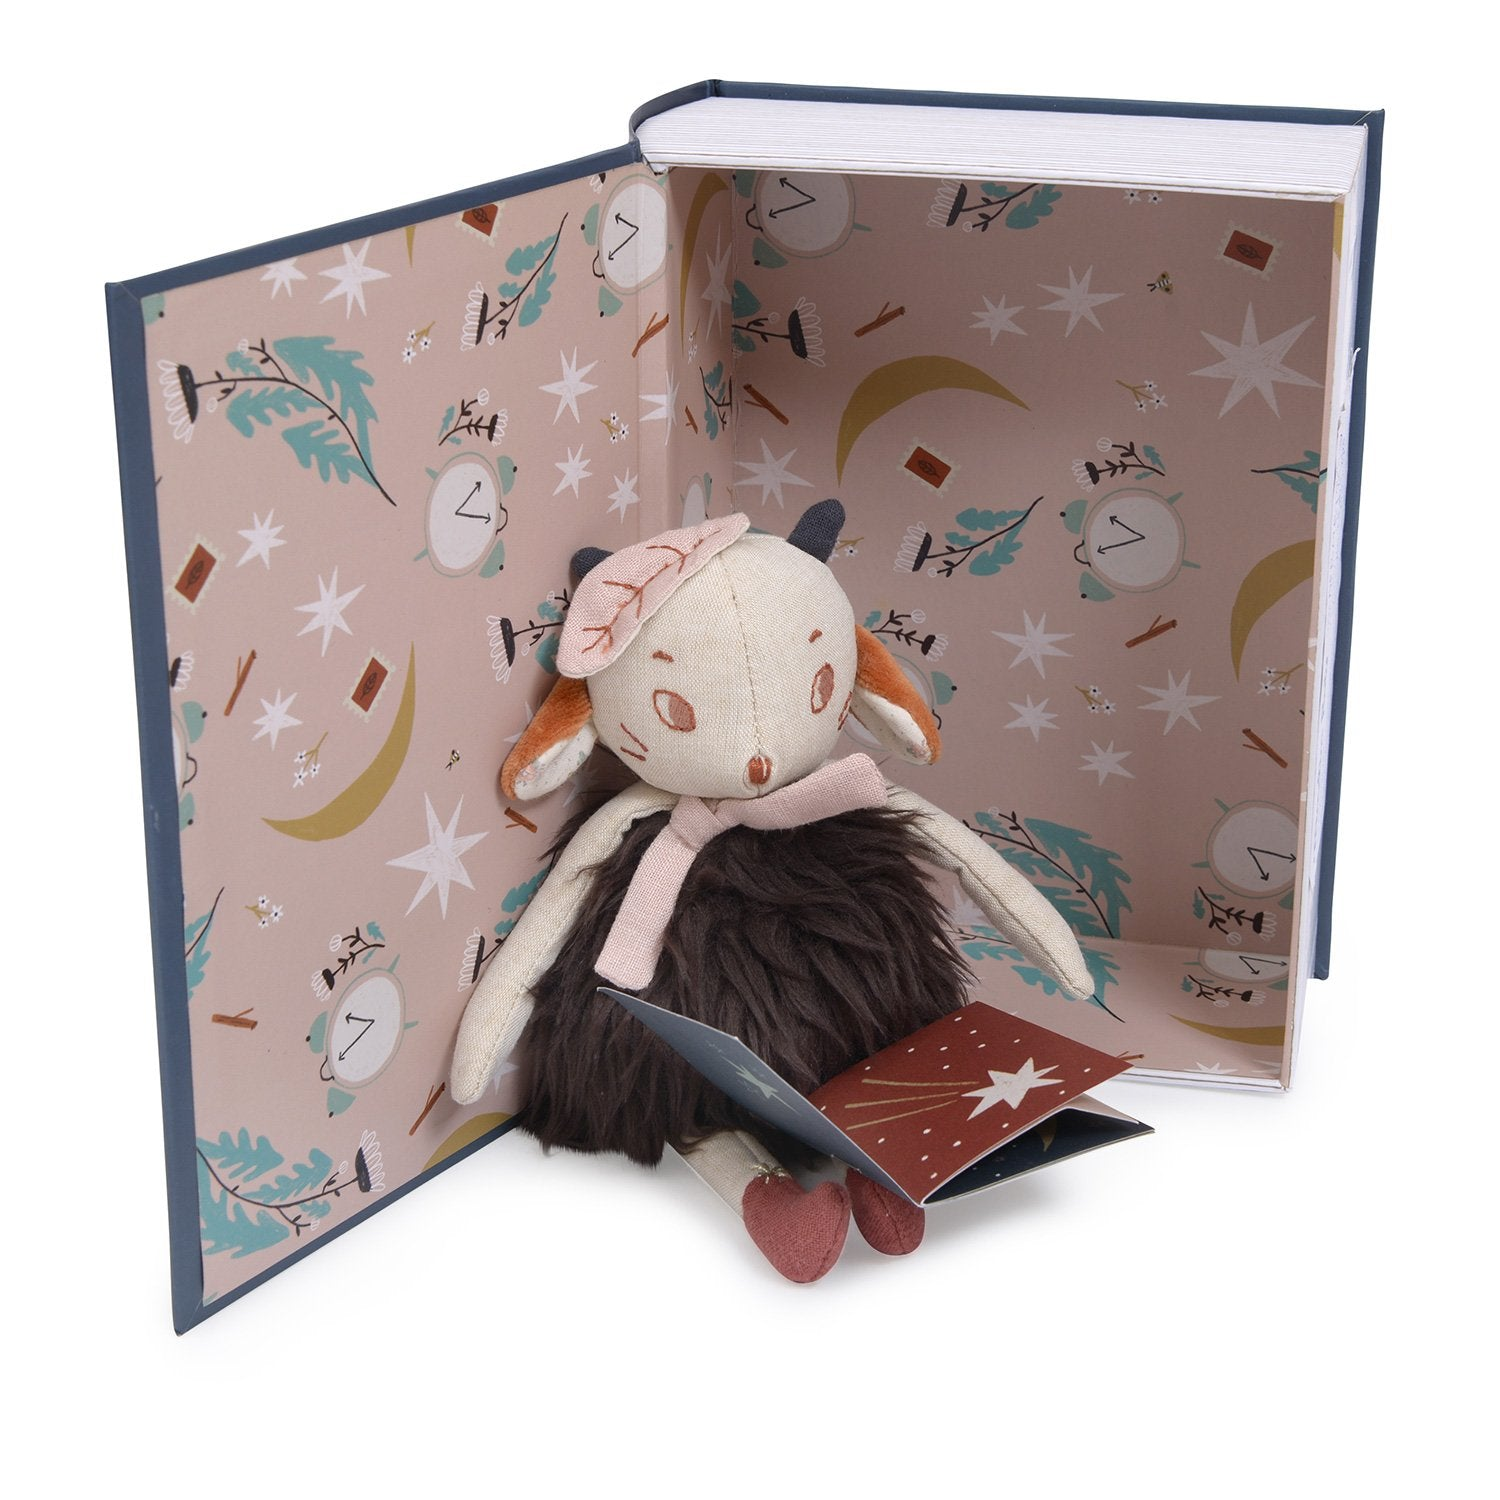 Moulin Roty beautiful night book